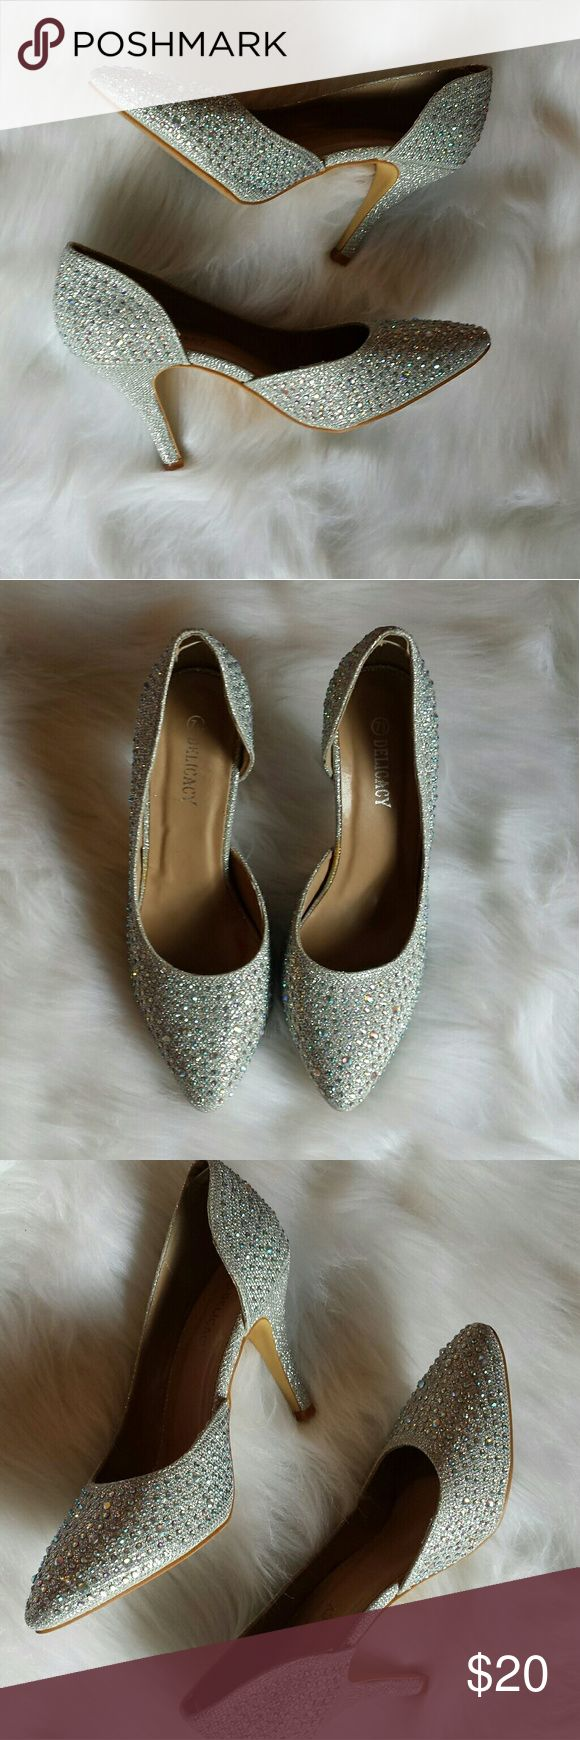 Like 🆕 Silver rhinestone heels Womens 7 1/2 kitten holographic heels. Used but in great condition. Nothing missing or broken. Yellow stain on the inside from the manufacturer's glue. Silver with holographic gems. Pictures don't do it justice! Delicacy Shoes Heels